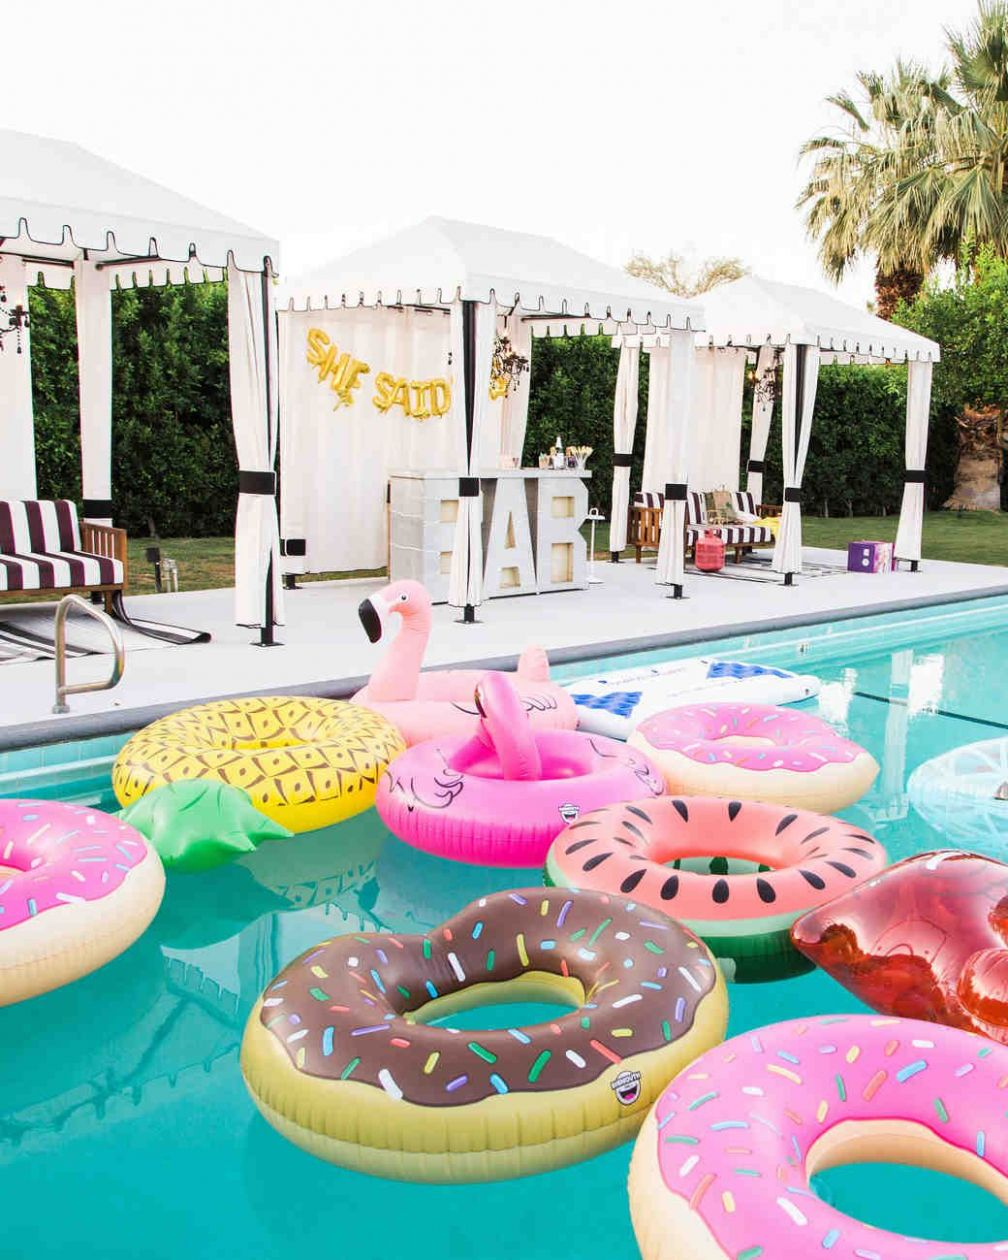 Pool Party Decoration Ideas 11 - Foreign policy